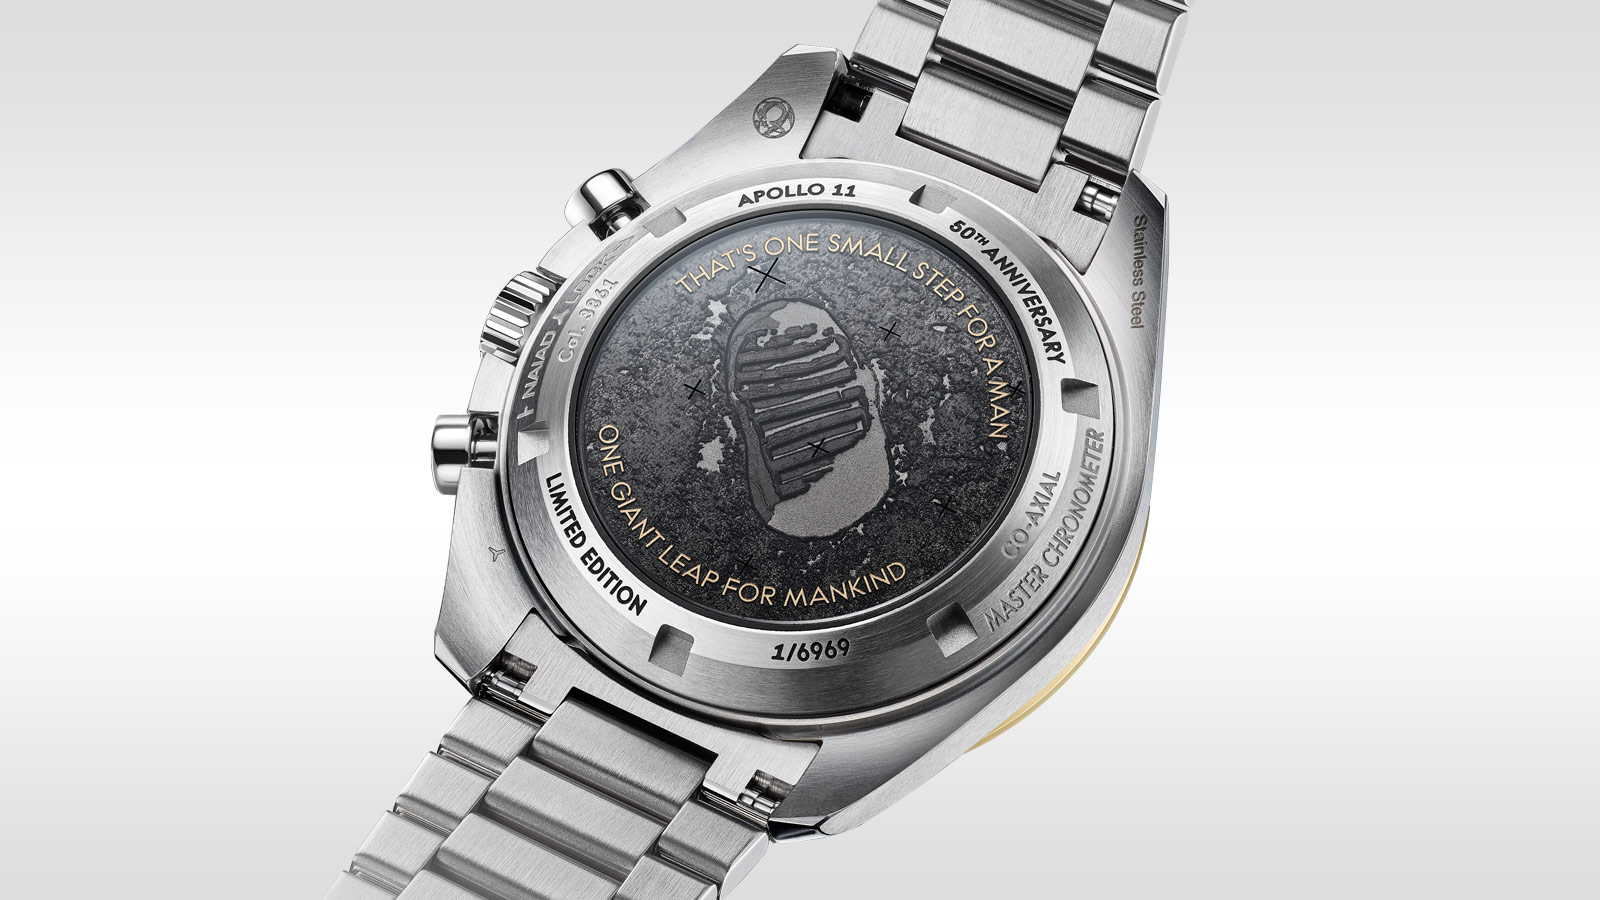 Speedmaster Moonwatch Moonwatch Anniversary Limited Series - 310.20.42.50.01.001 - View 2